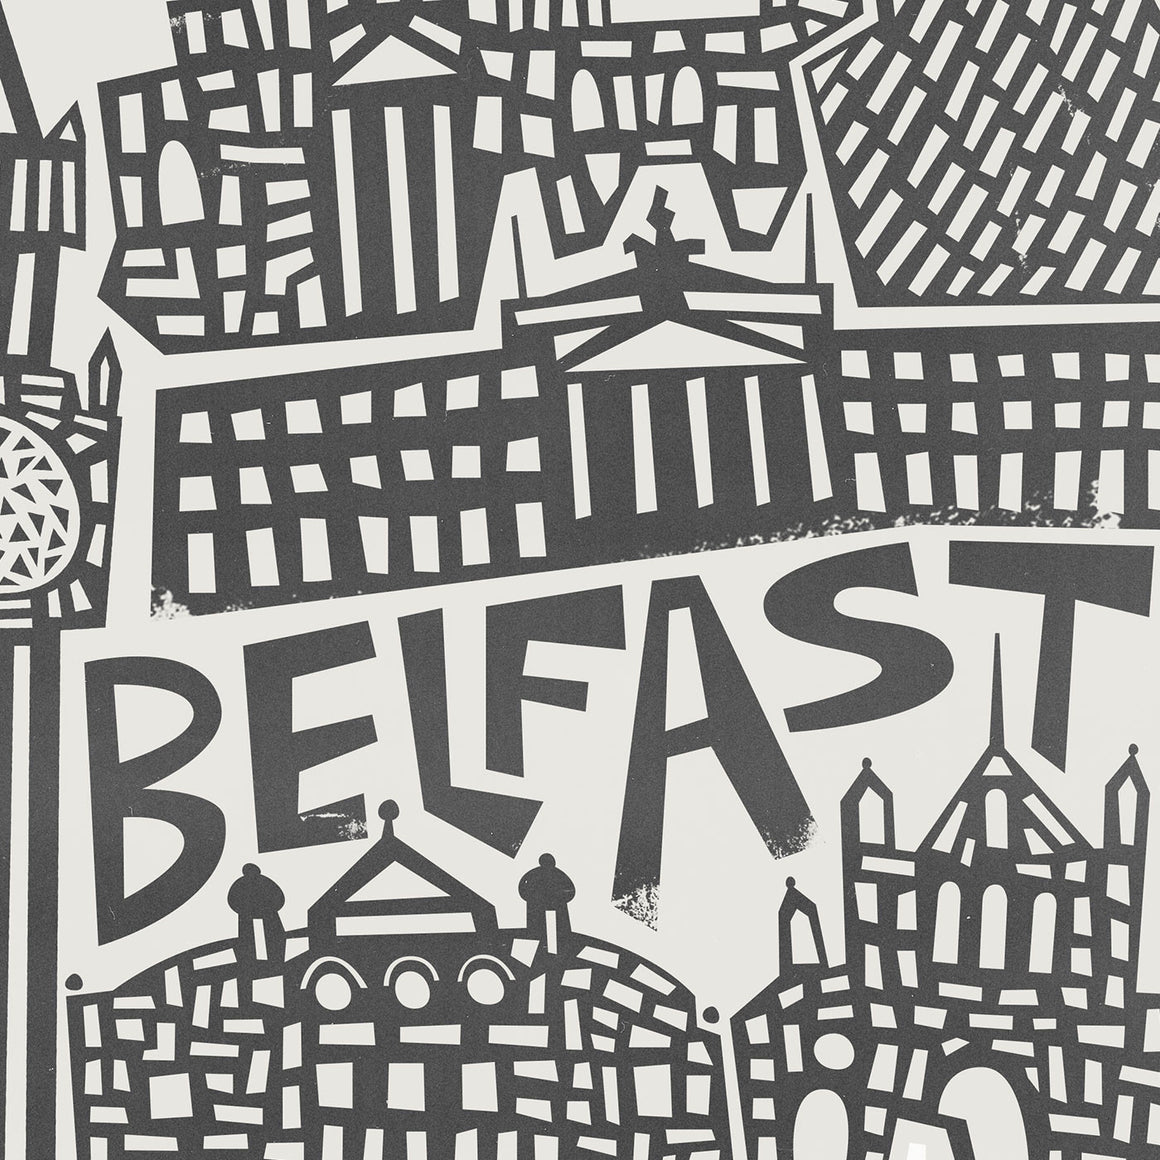 Belfast Cityscape Greeting Card